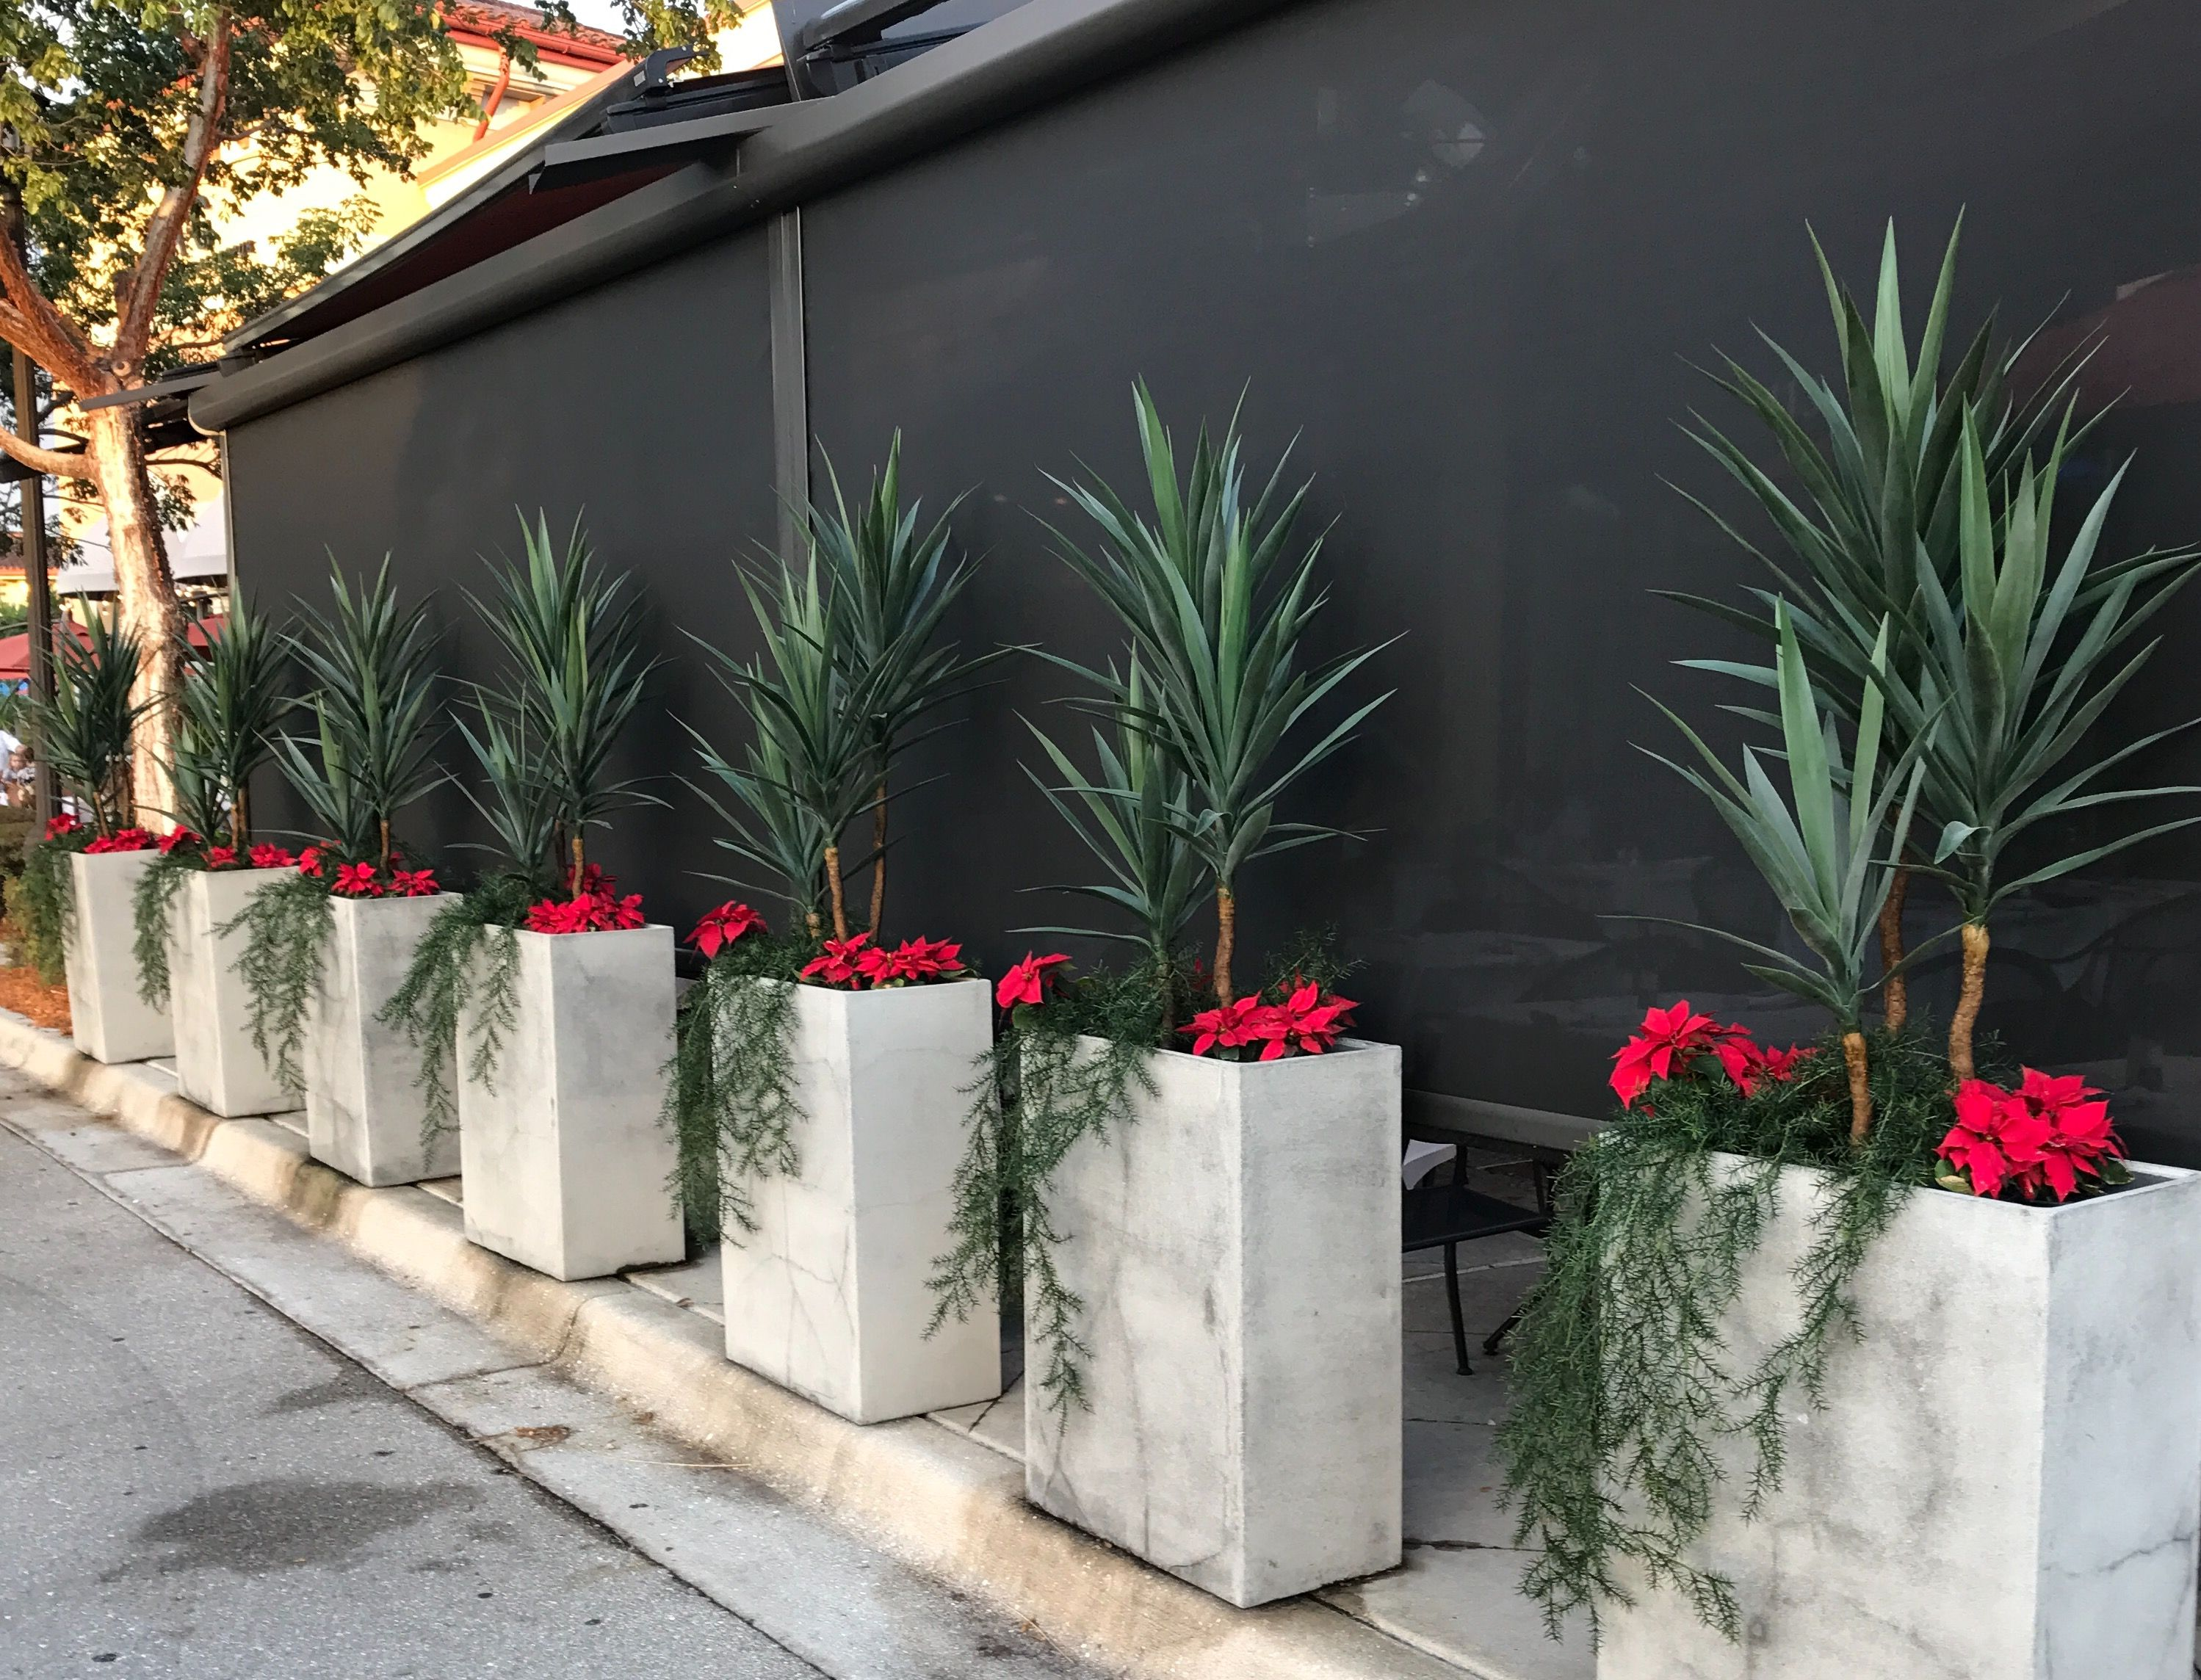 Artificial Outdoor Plants Such As Yucca Trees And Sprengeri Fern Give Maintenance Fre Artificial Plants Outdoor Artificial Plants Decor Small Artificial Plants